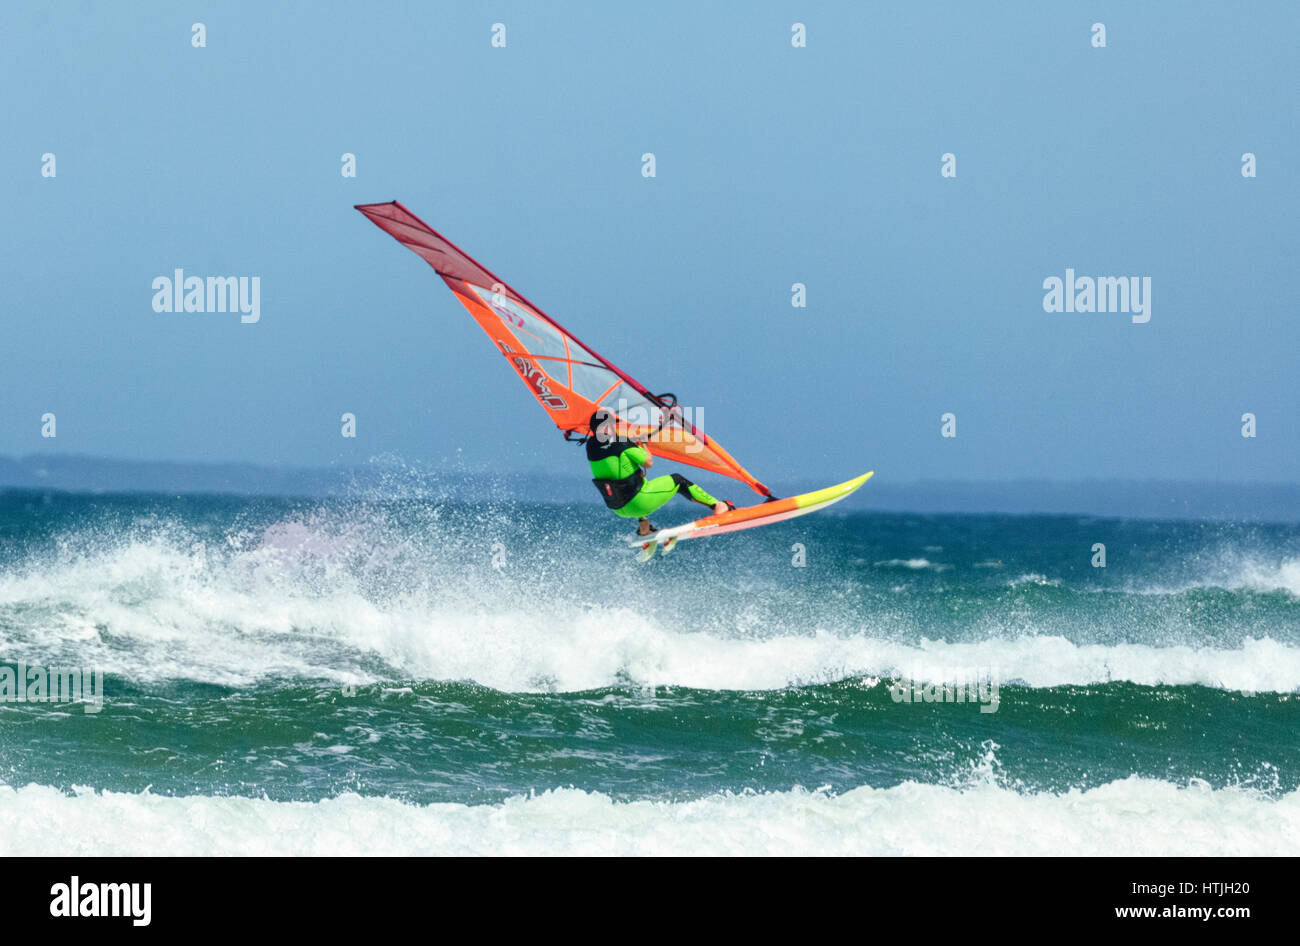 Windsurfer jumping over a big wave at Seven Mile Beach, Gerroa, Illawarra Coast, New South Wales, NSW, Australia Stock Photo